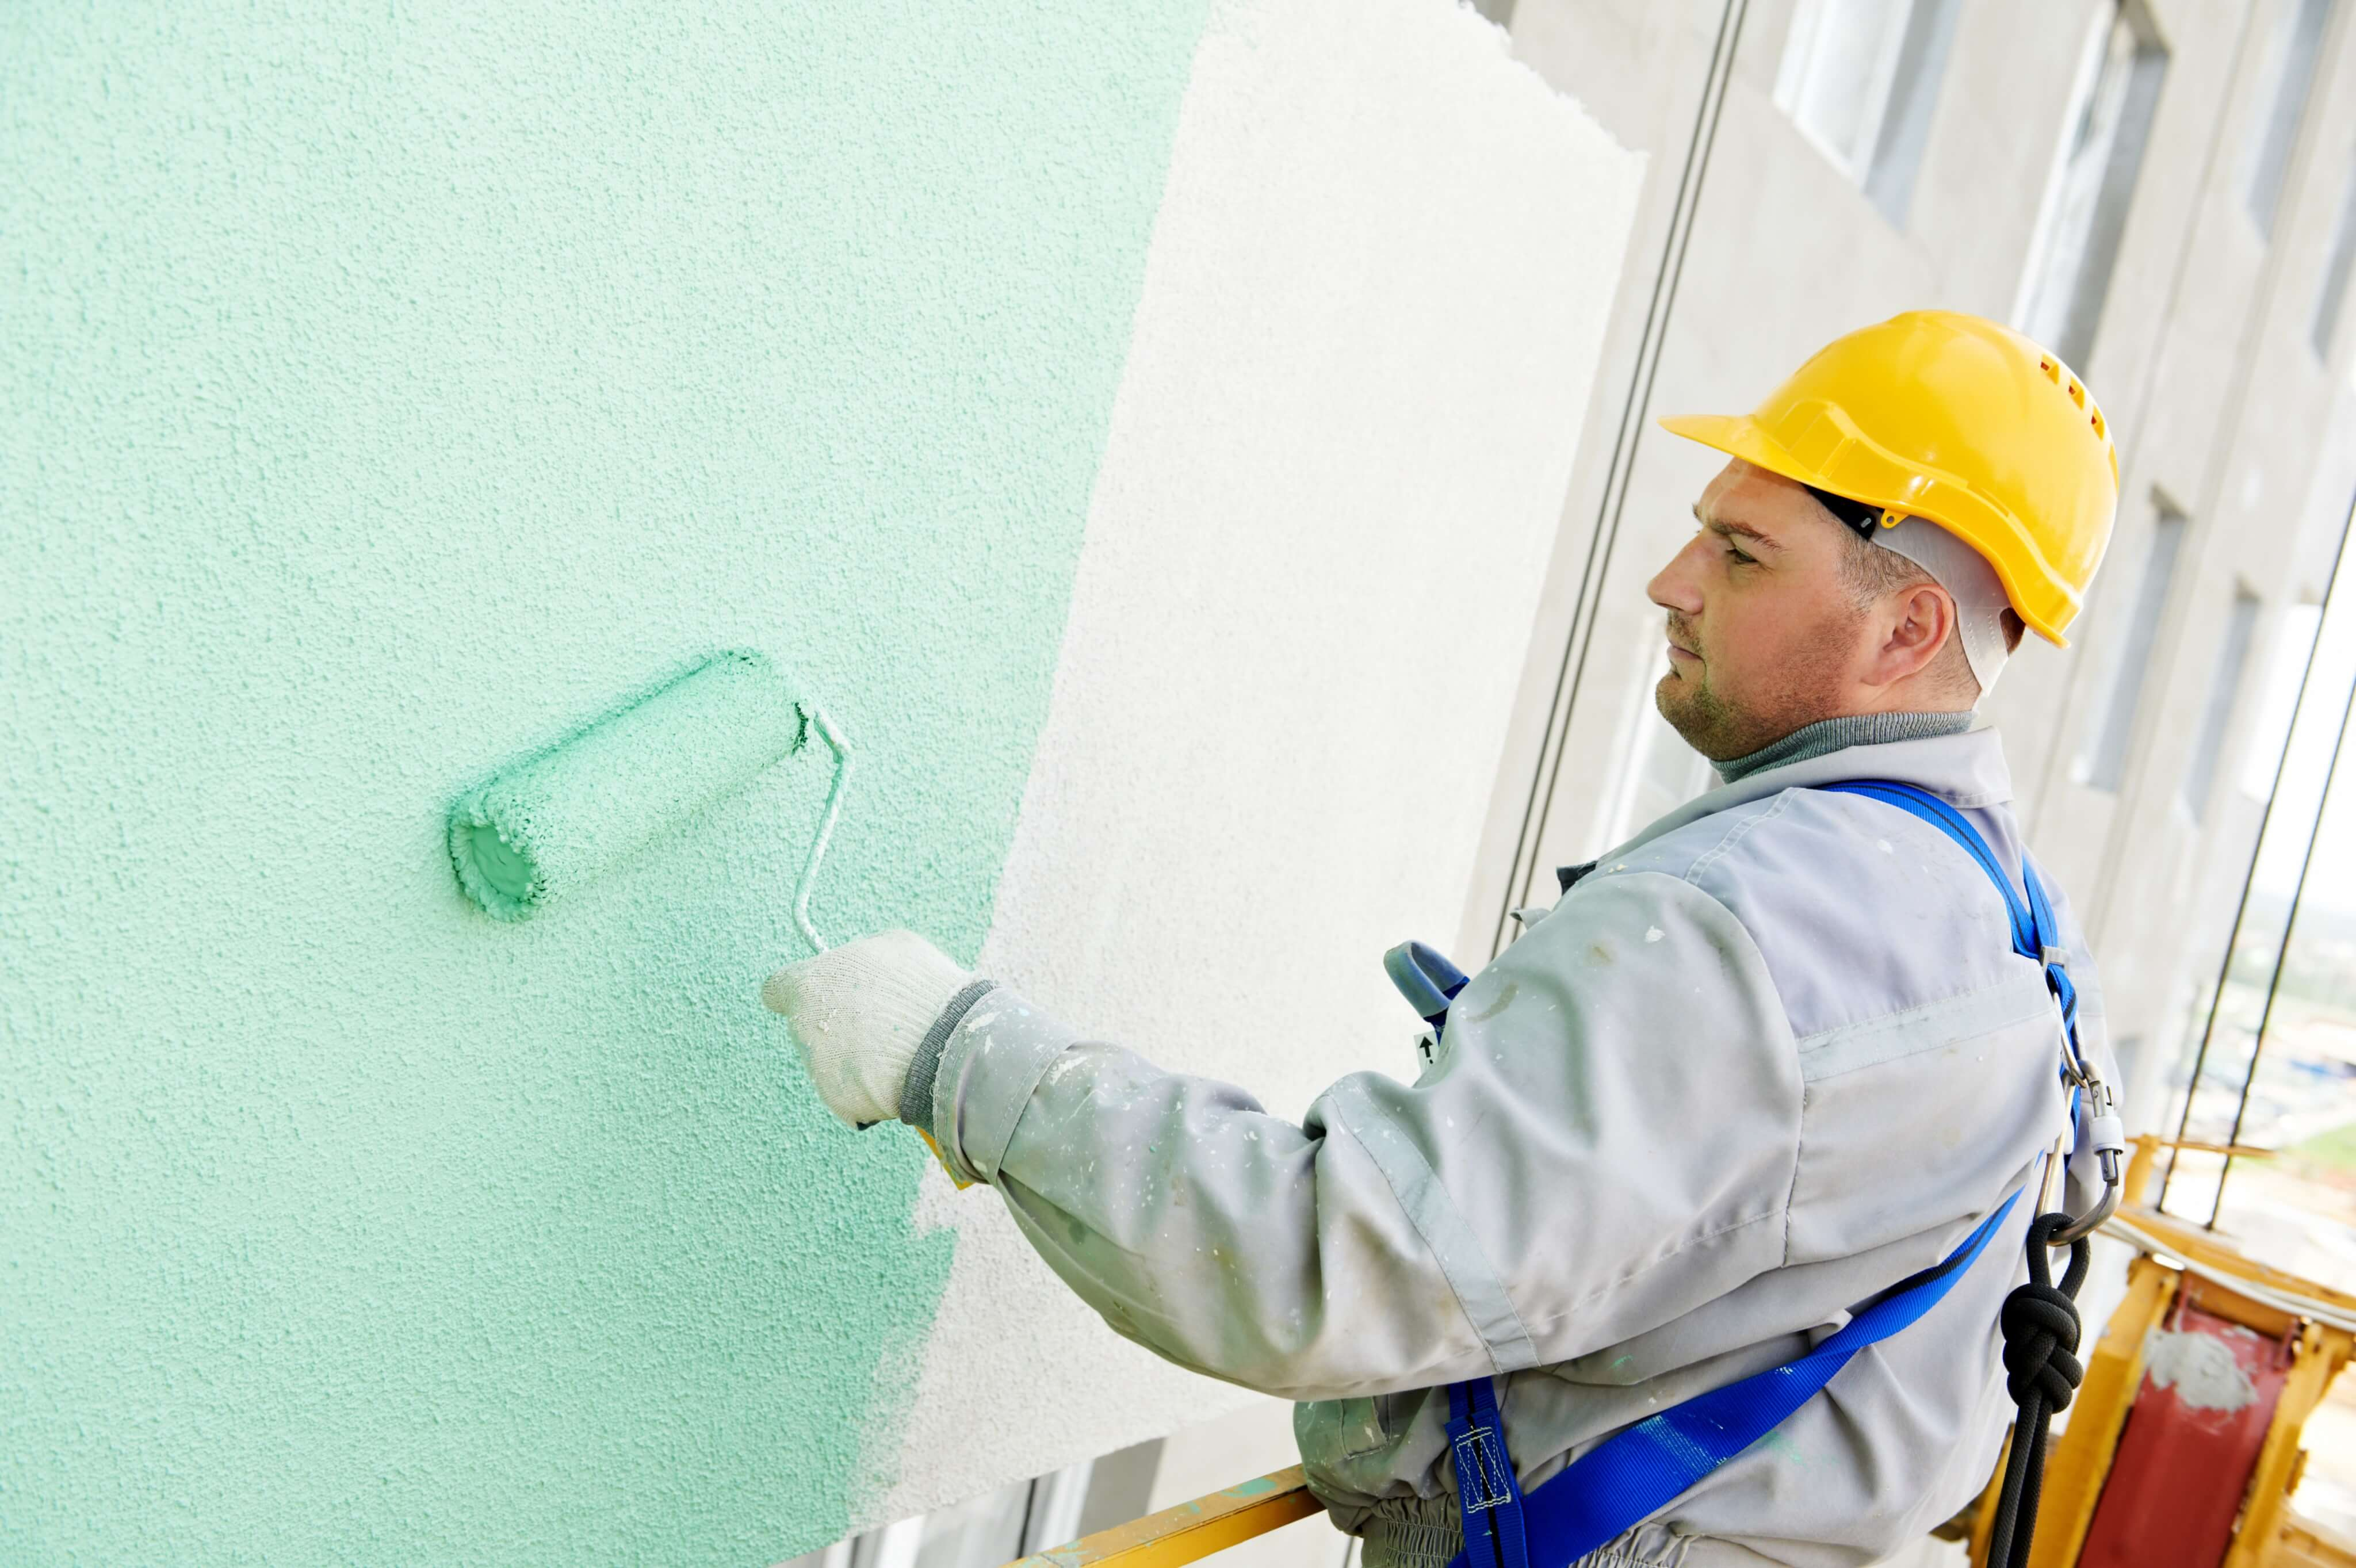 How Often Should Painting By a Repaint Specialist Be Done?